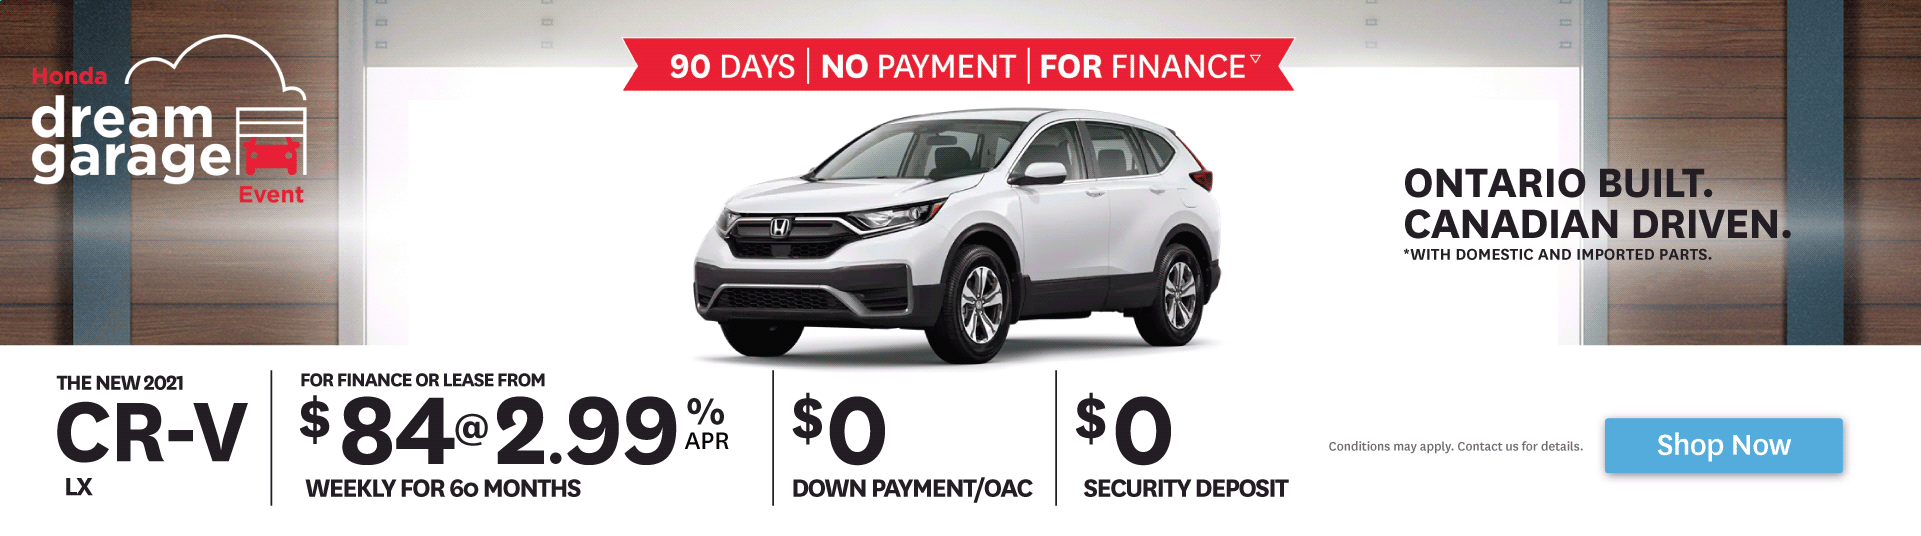 2021 CR-V - 90 Days - No Payment - For Finance